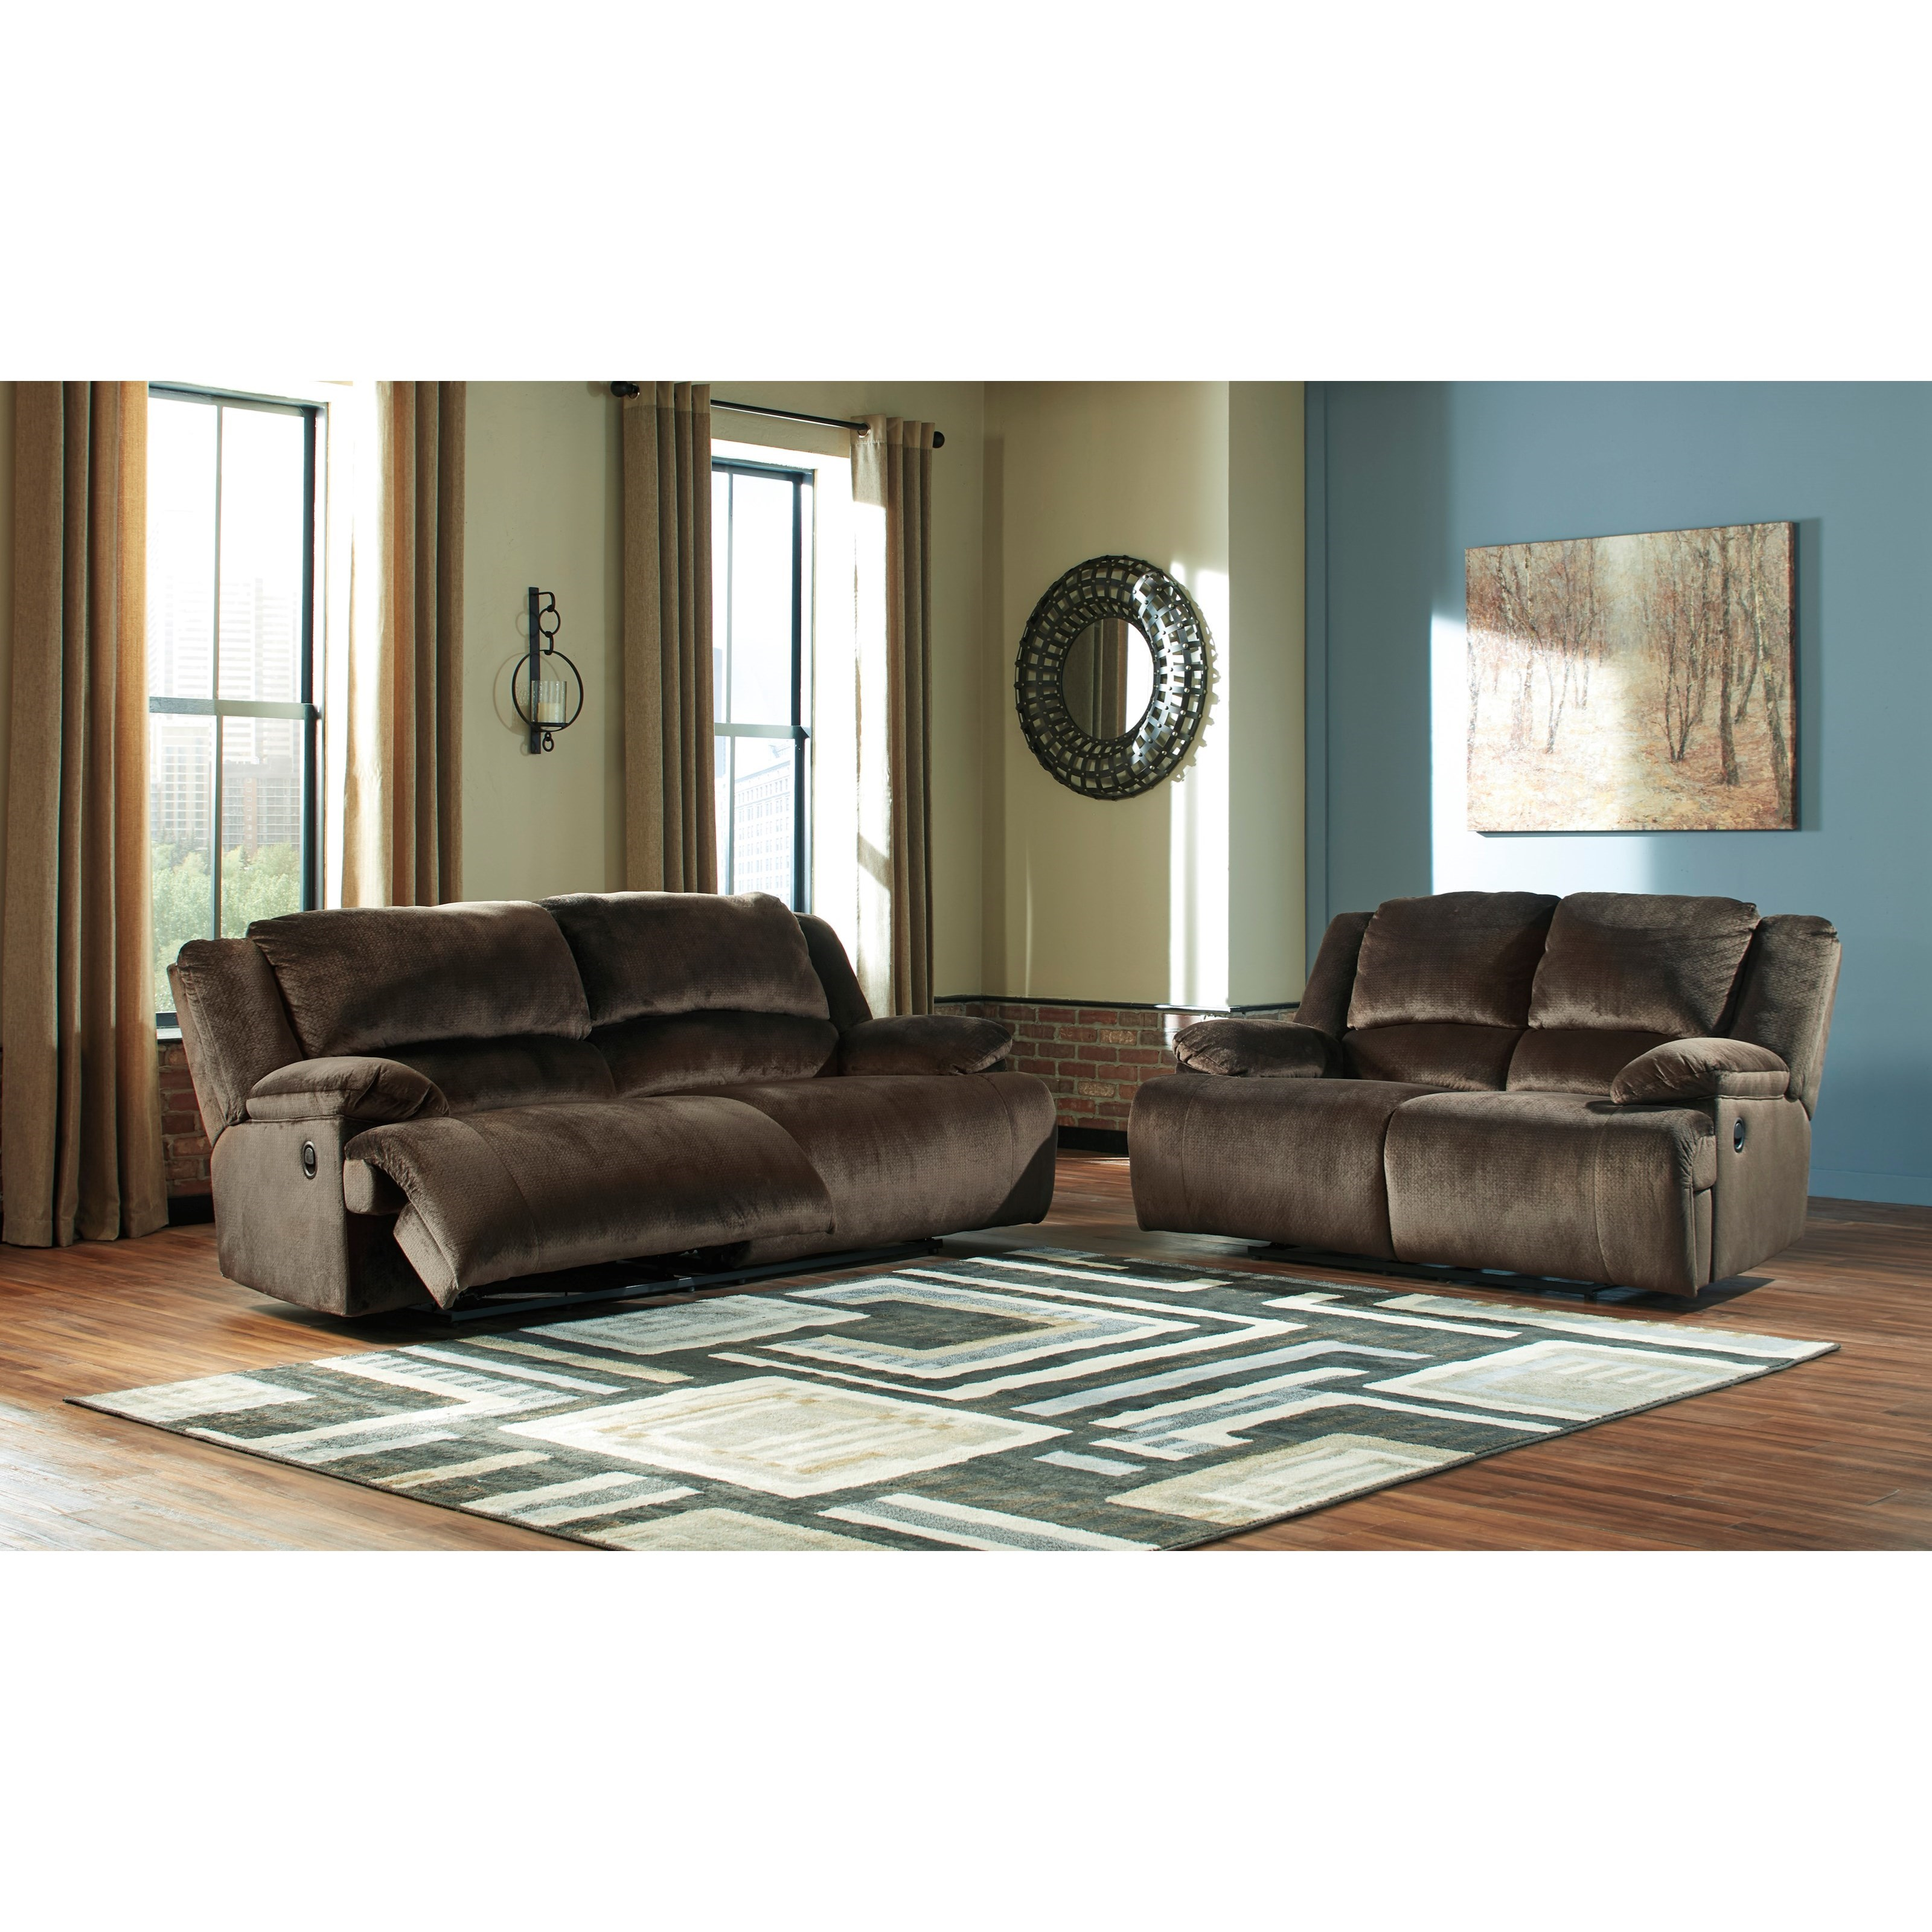 Clonmel Power Reclining Living Room Group by Signature Design by Ashley at Value City Furniture